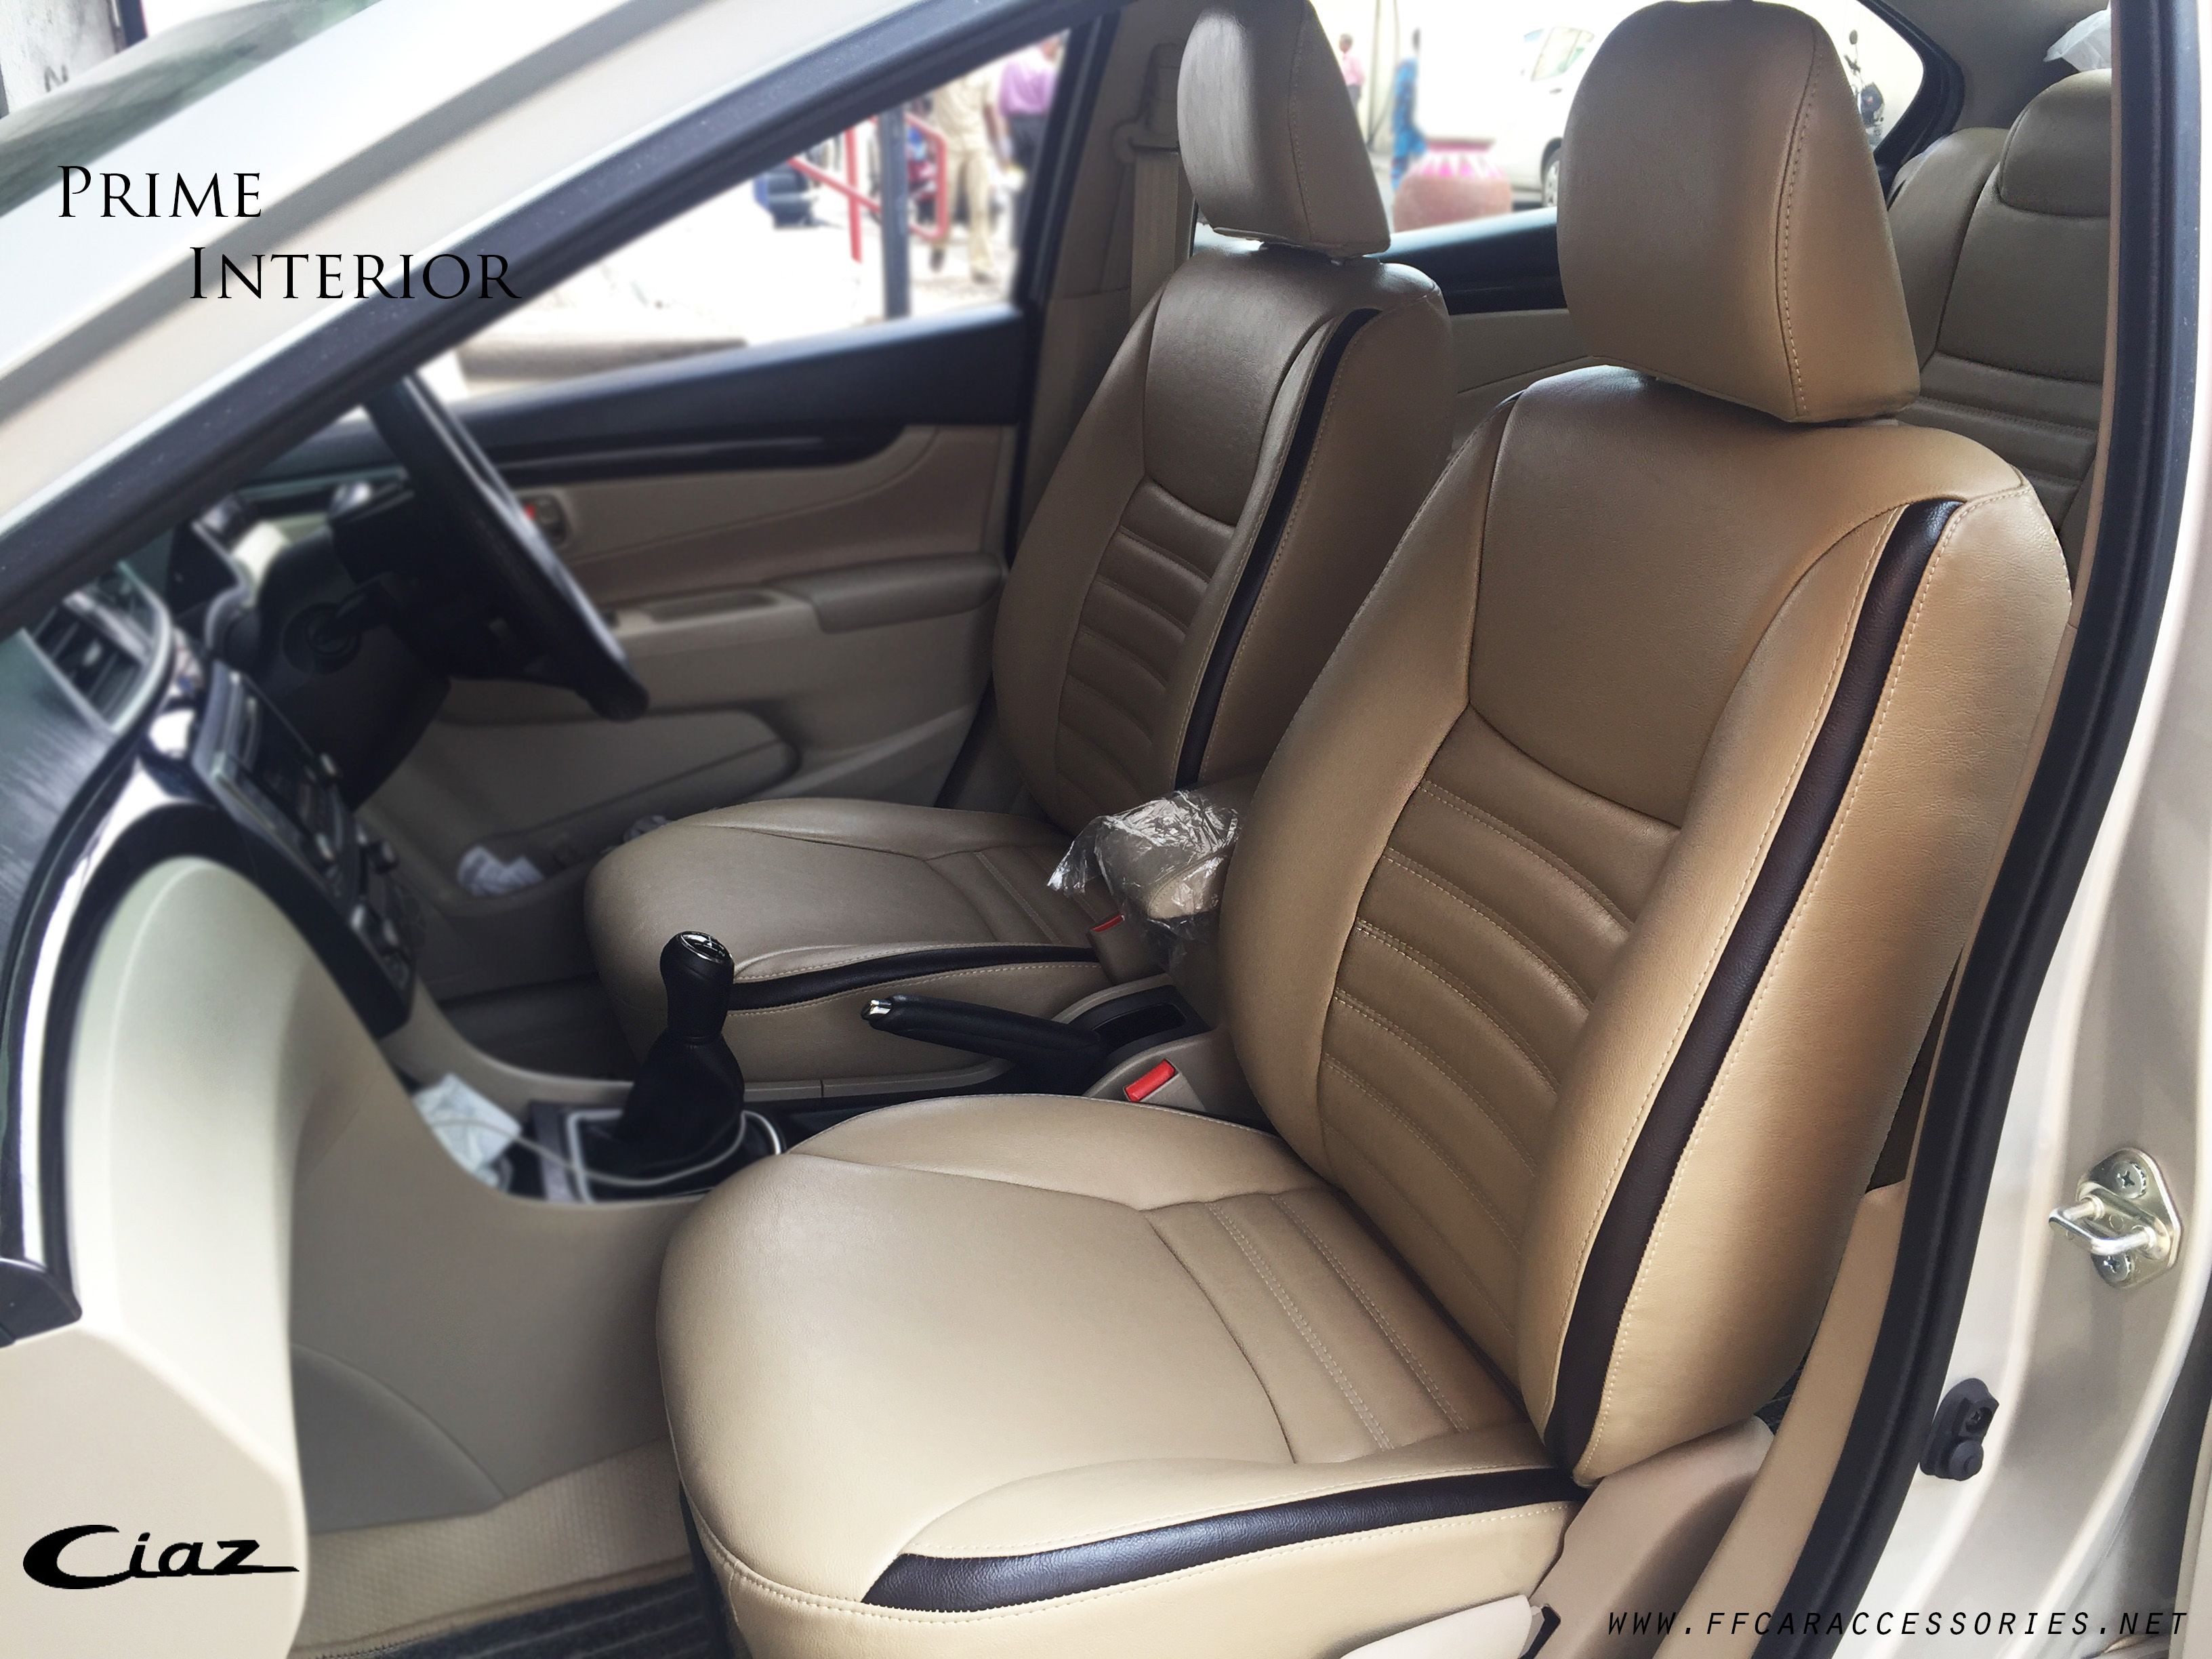 Maruti Ciaz Custom Made Seat Covers Installed By Team Ff Car